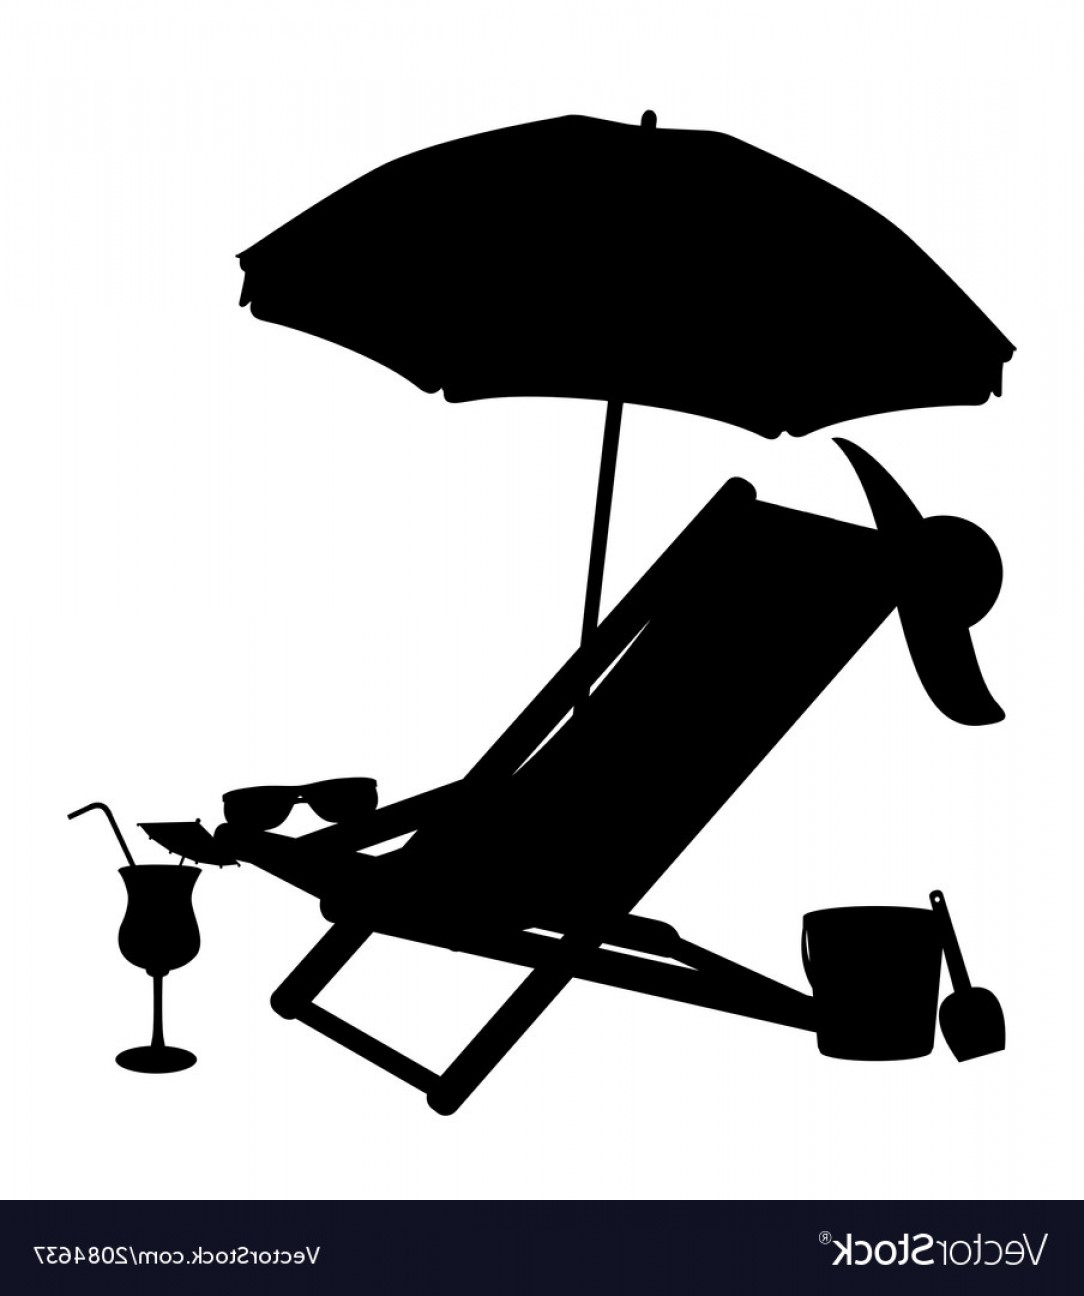 Umbrella Vector Black: Silhouette Of Beach Chairs And Umbrellas Vector